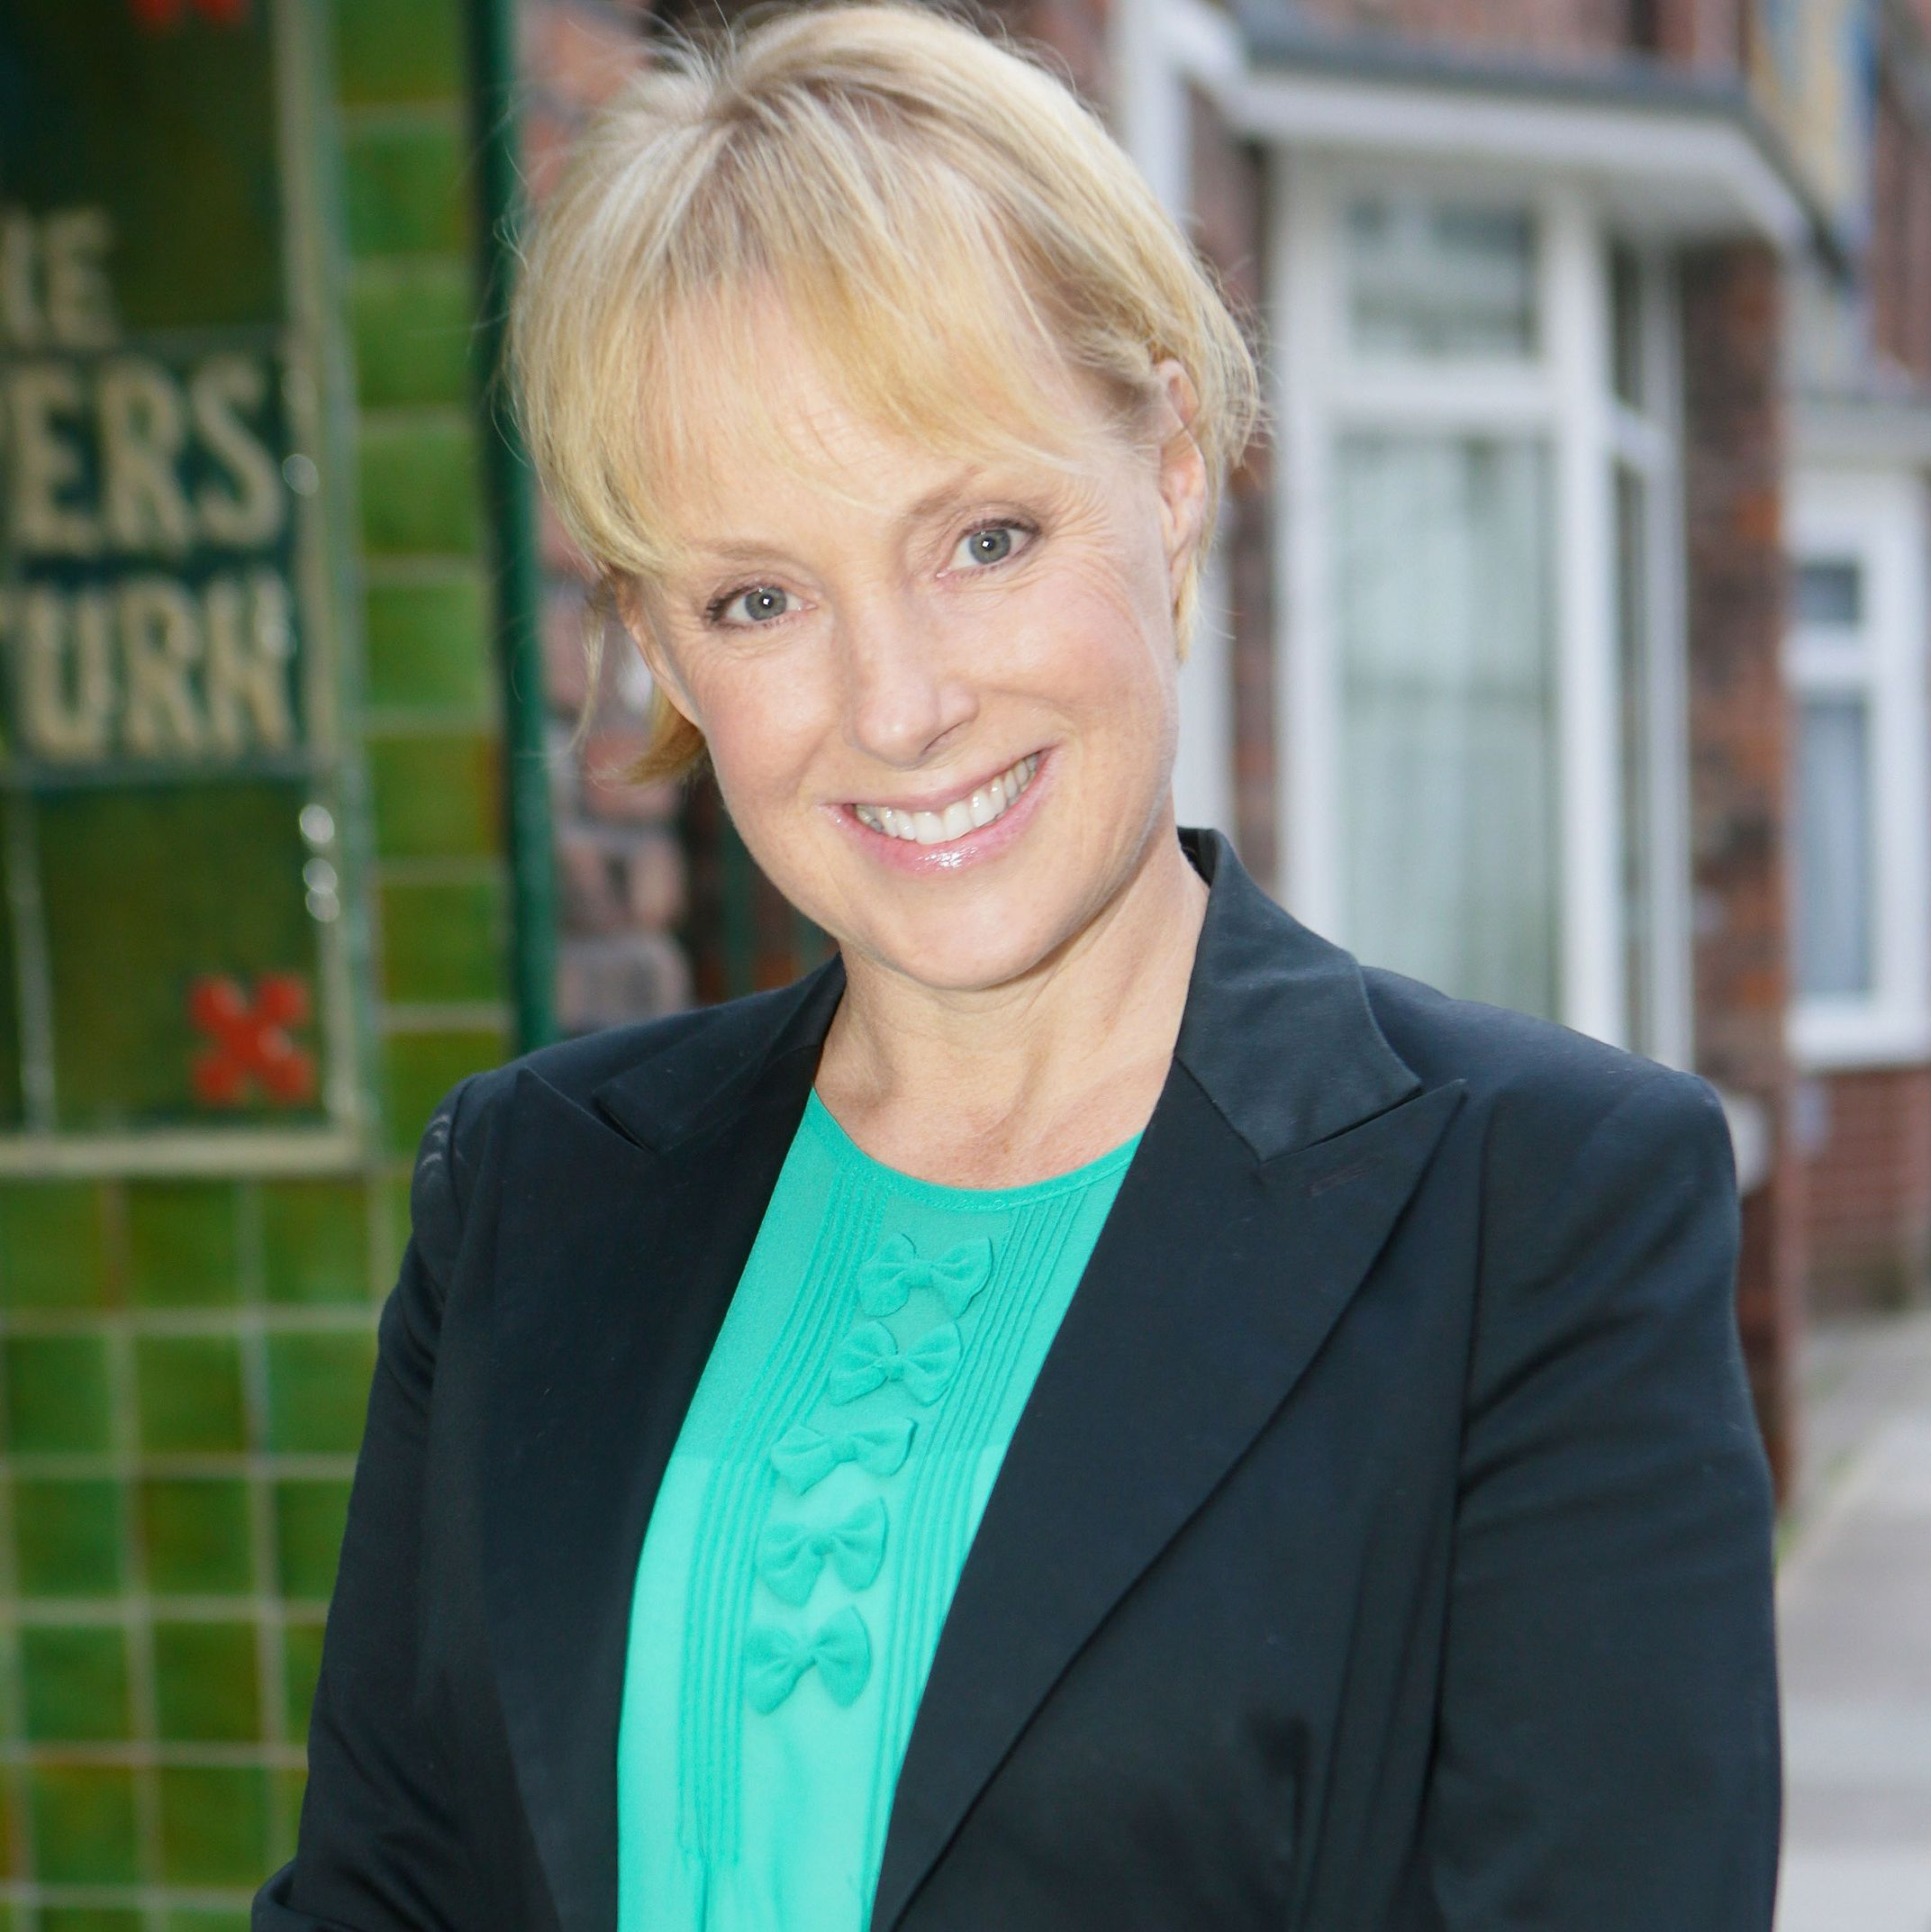 Coronation Street star Sally Dynevor responds to claims that the soap is in crisis